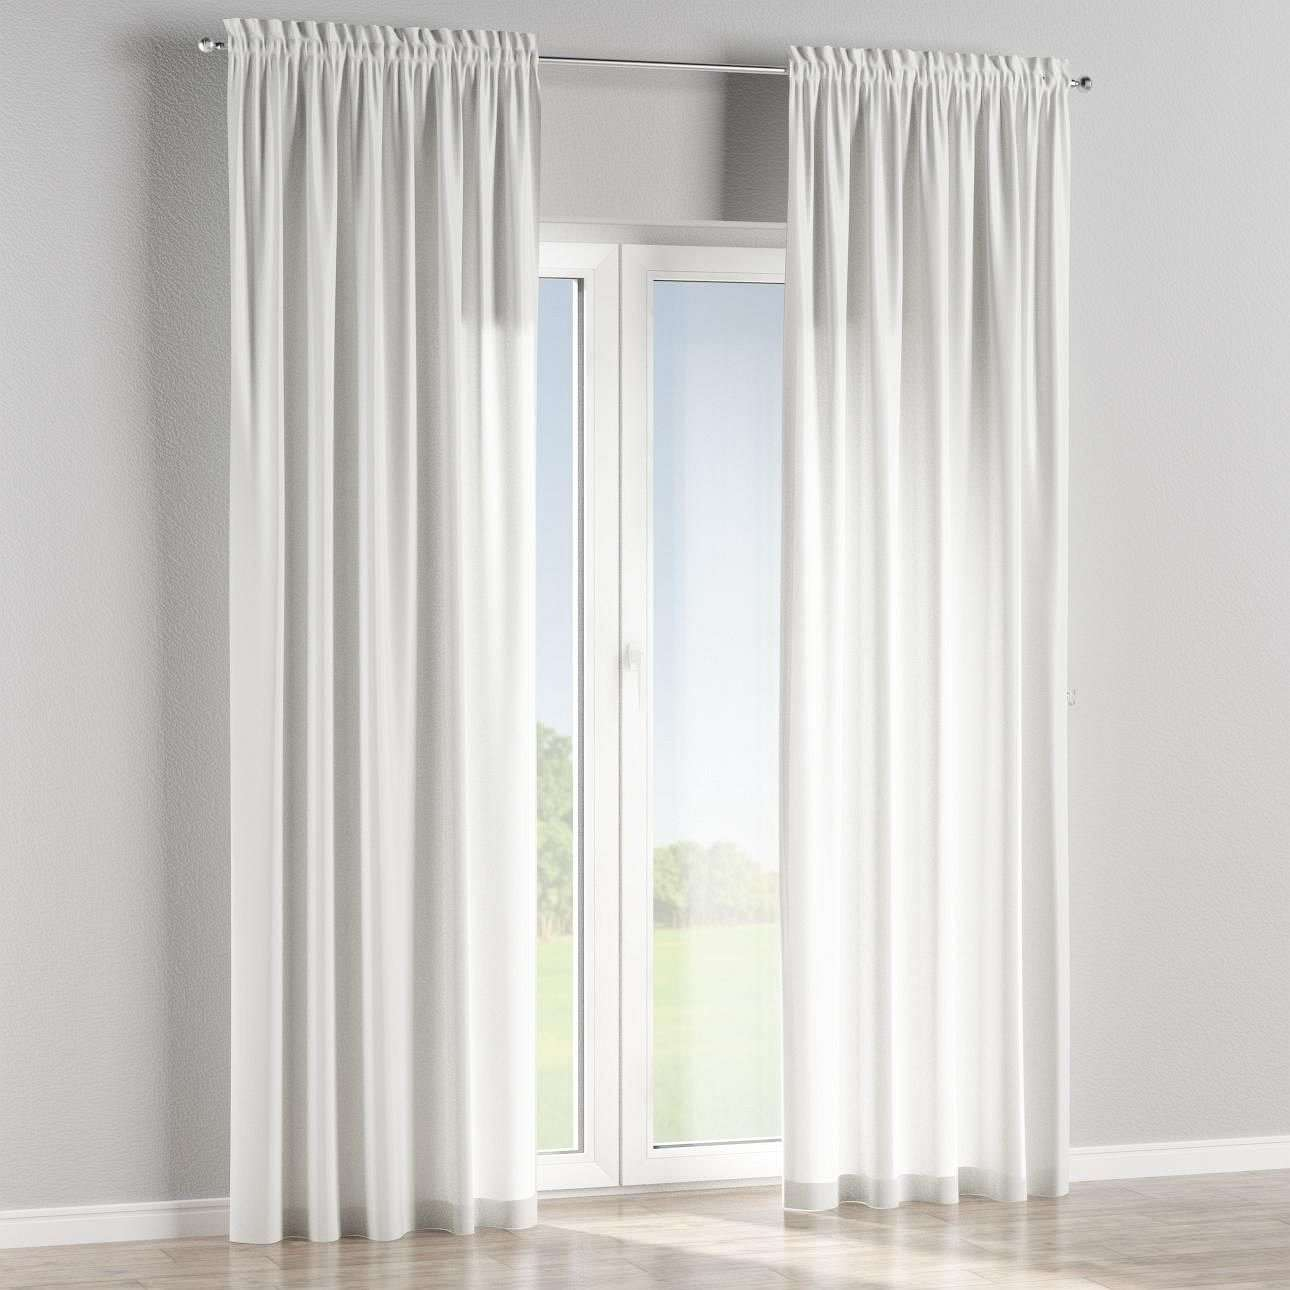 Slot and frill lined curtains in collection Rustica, fabric: 138-22